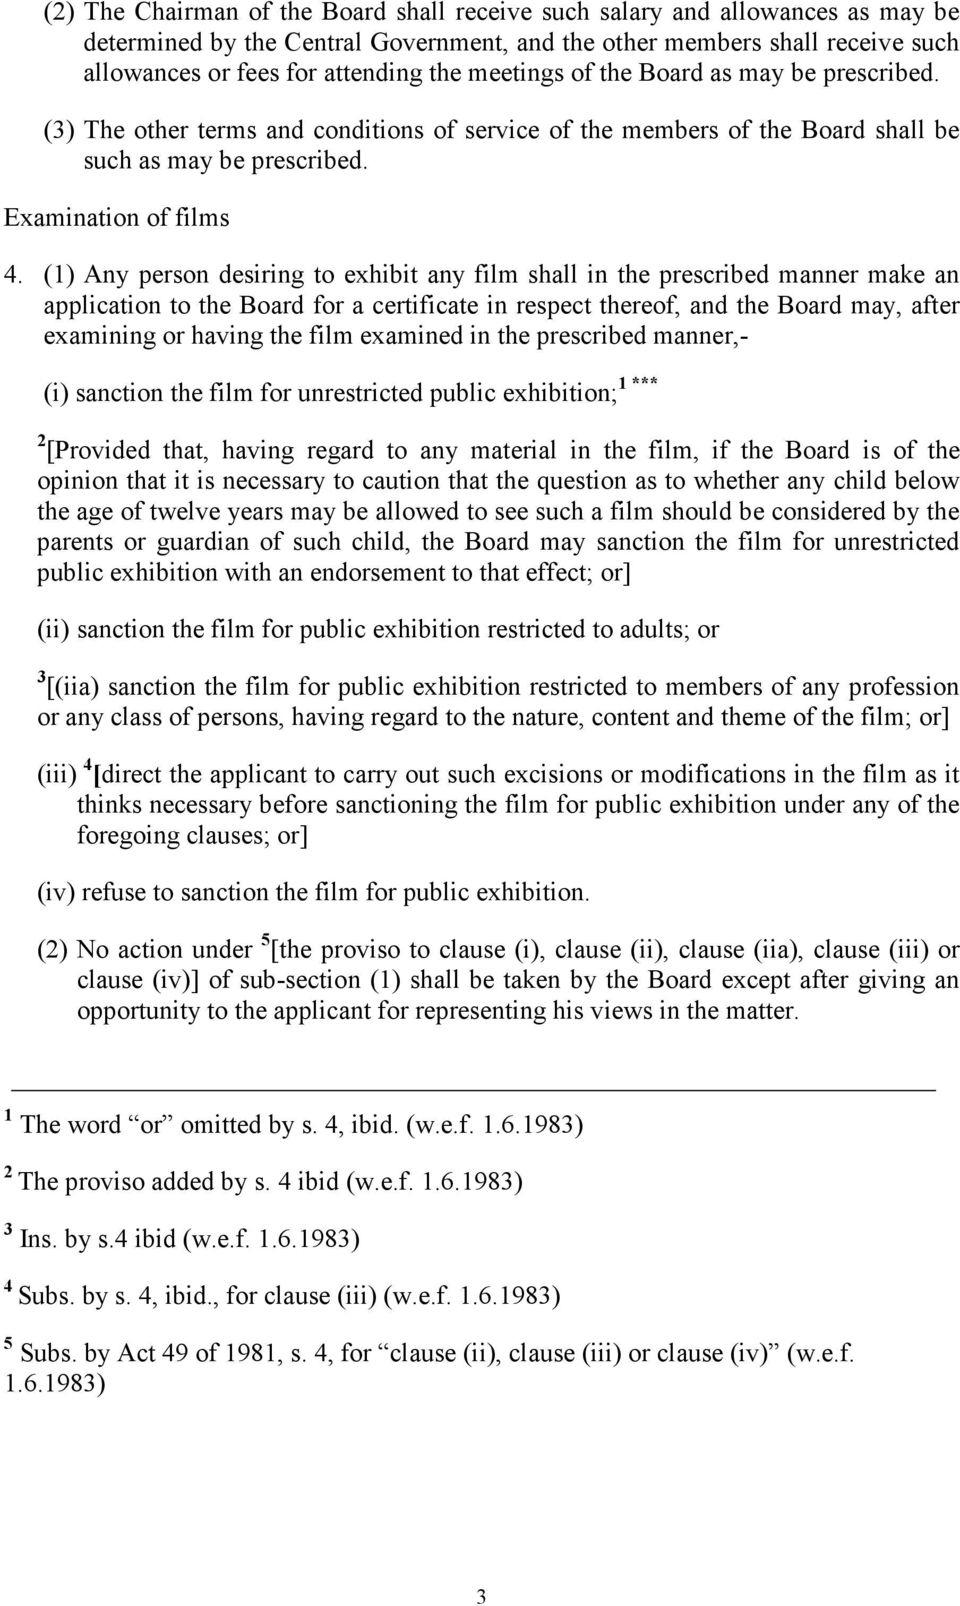 (1) Any person desiring to exhibit any film shall in the prescribed manner make an application to the Board for a certificate in respect thereof, and the Board may, after examining or having the film